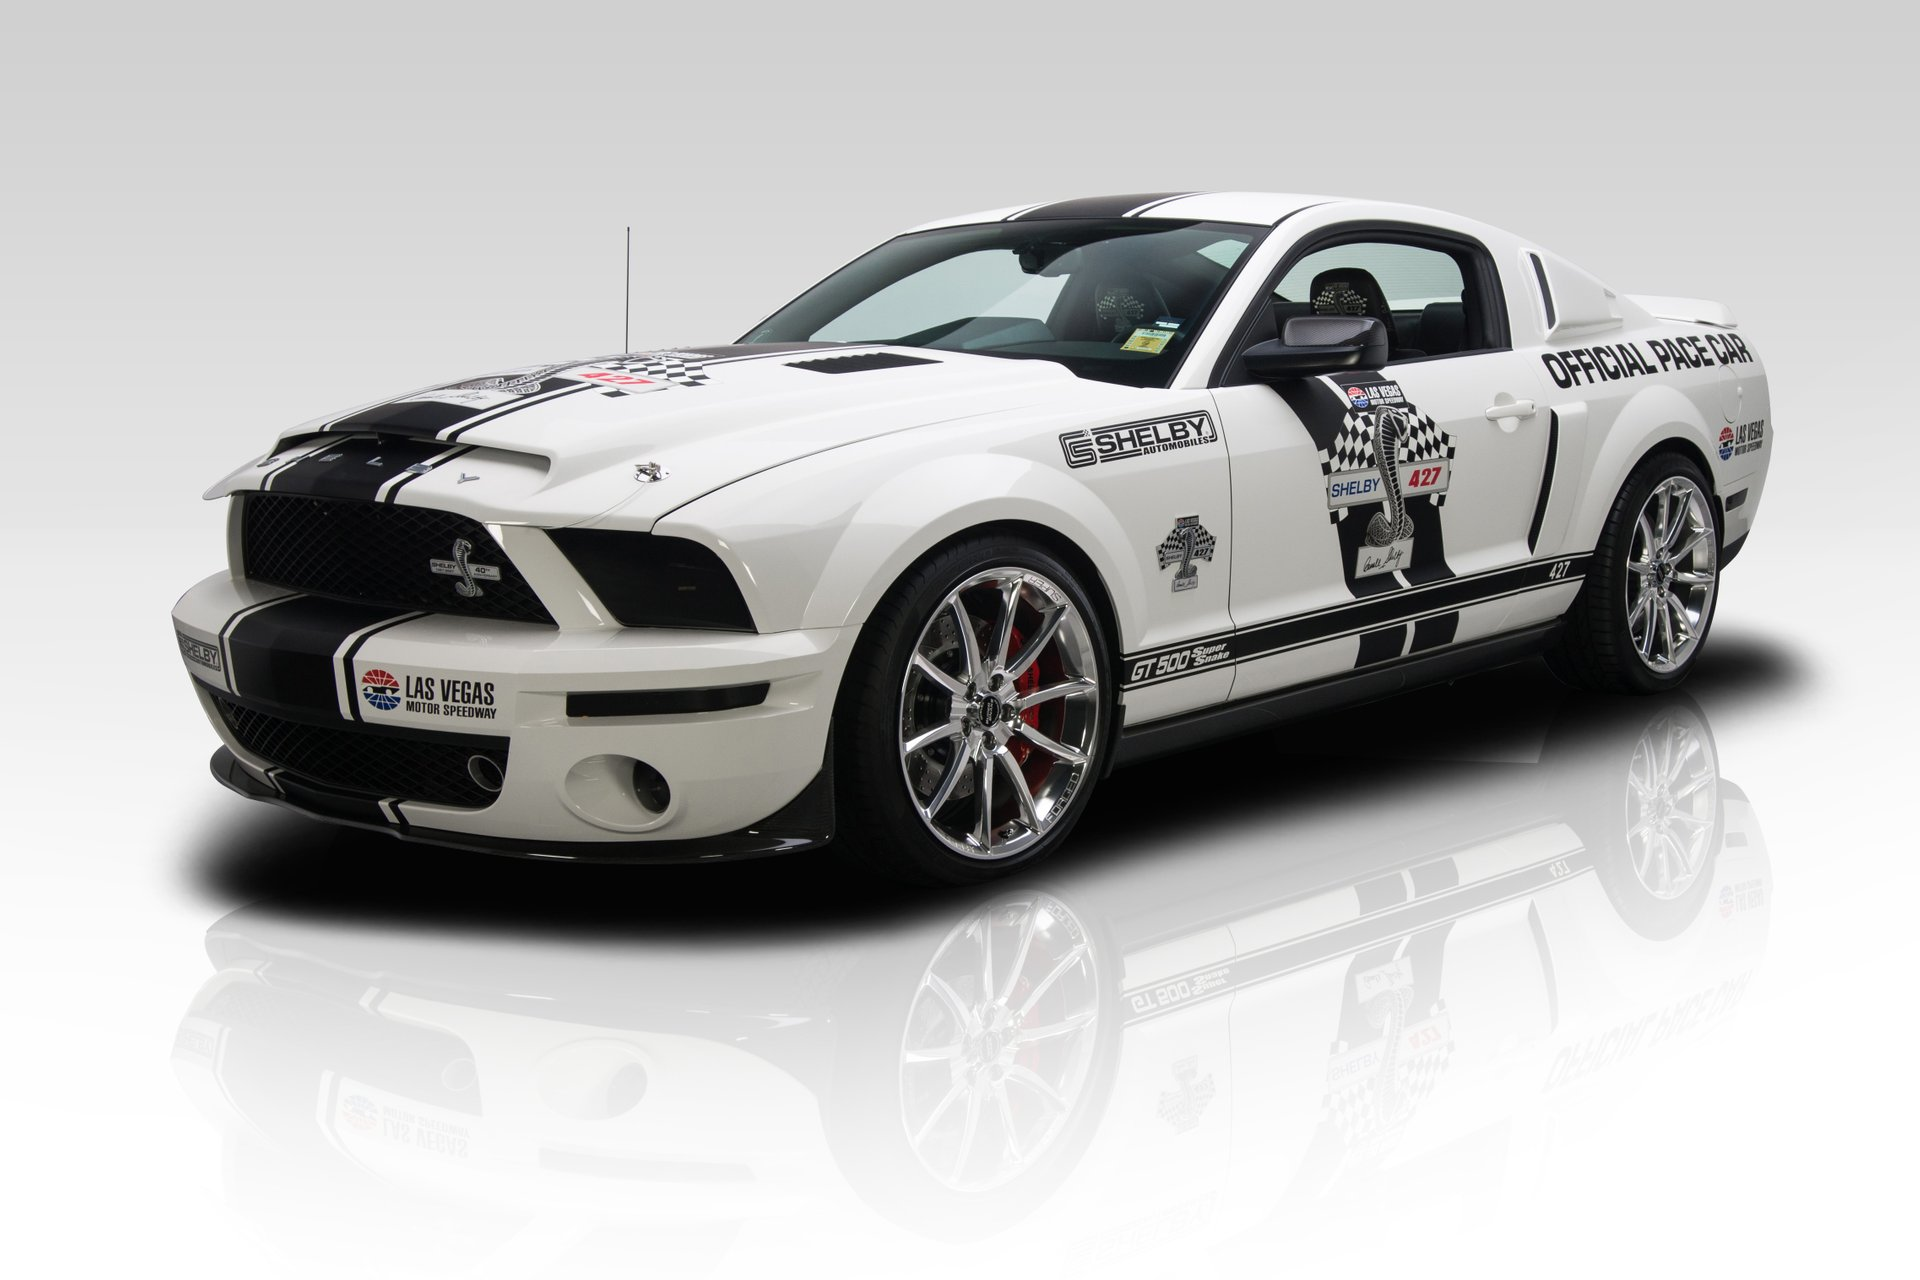 2007 ford mustang gt500 super snake pace car